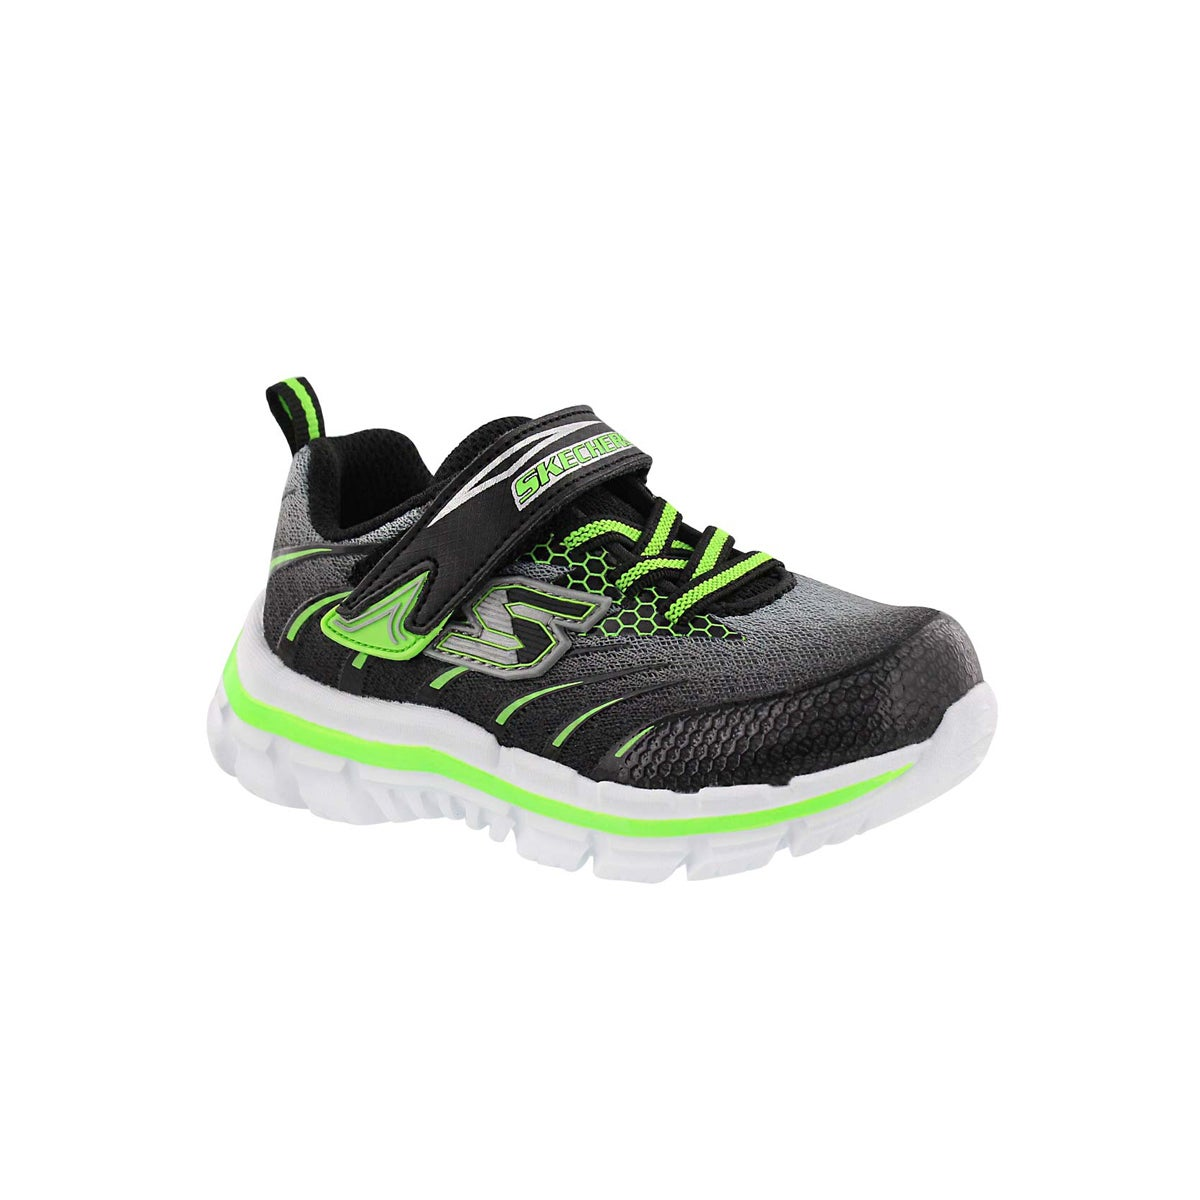 Infants' NITRATE black/lime sneakers